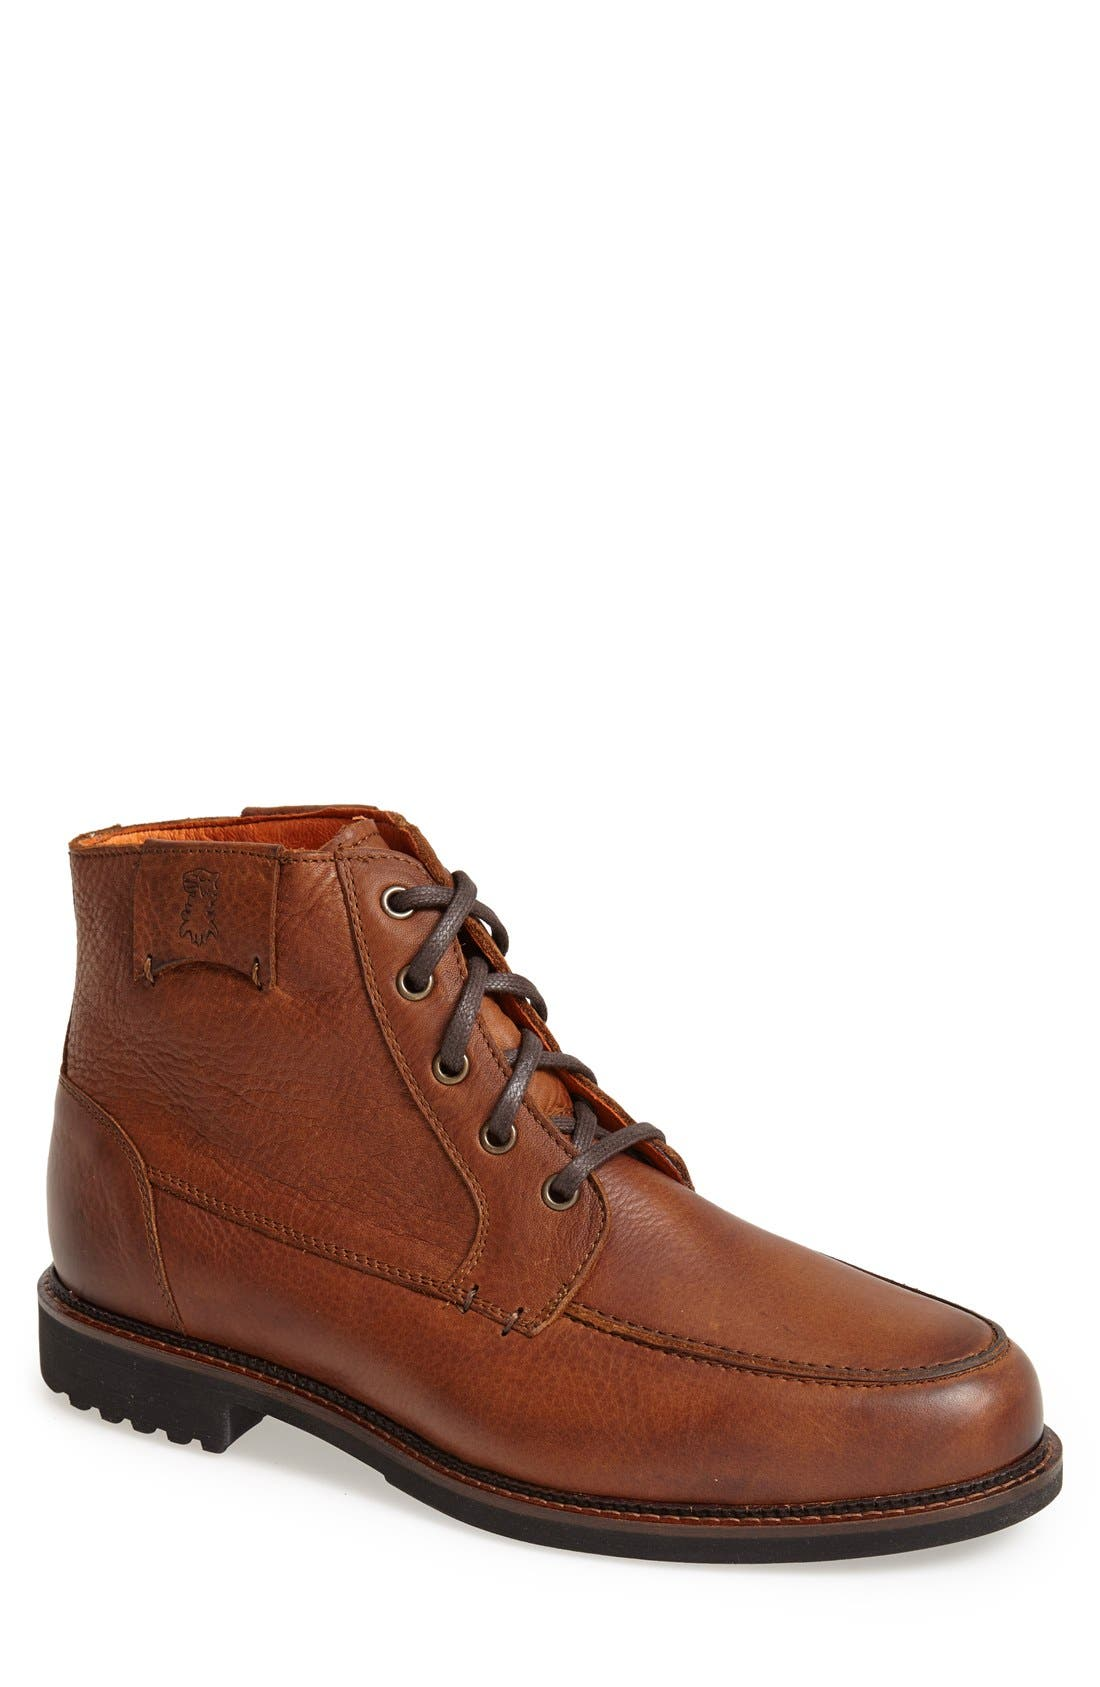 'Alpine' Moc Toe Boot,                             Main thumbnail 1, color,                             Worn Saddle